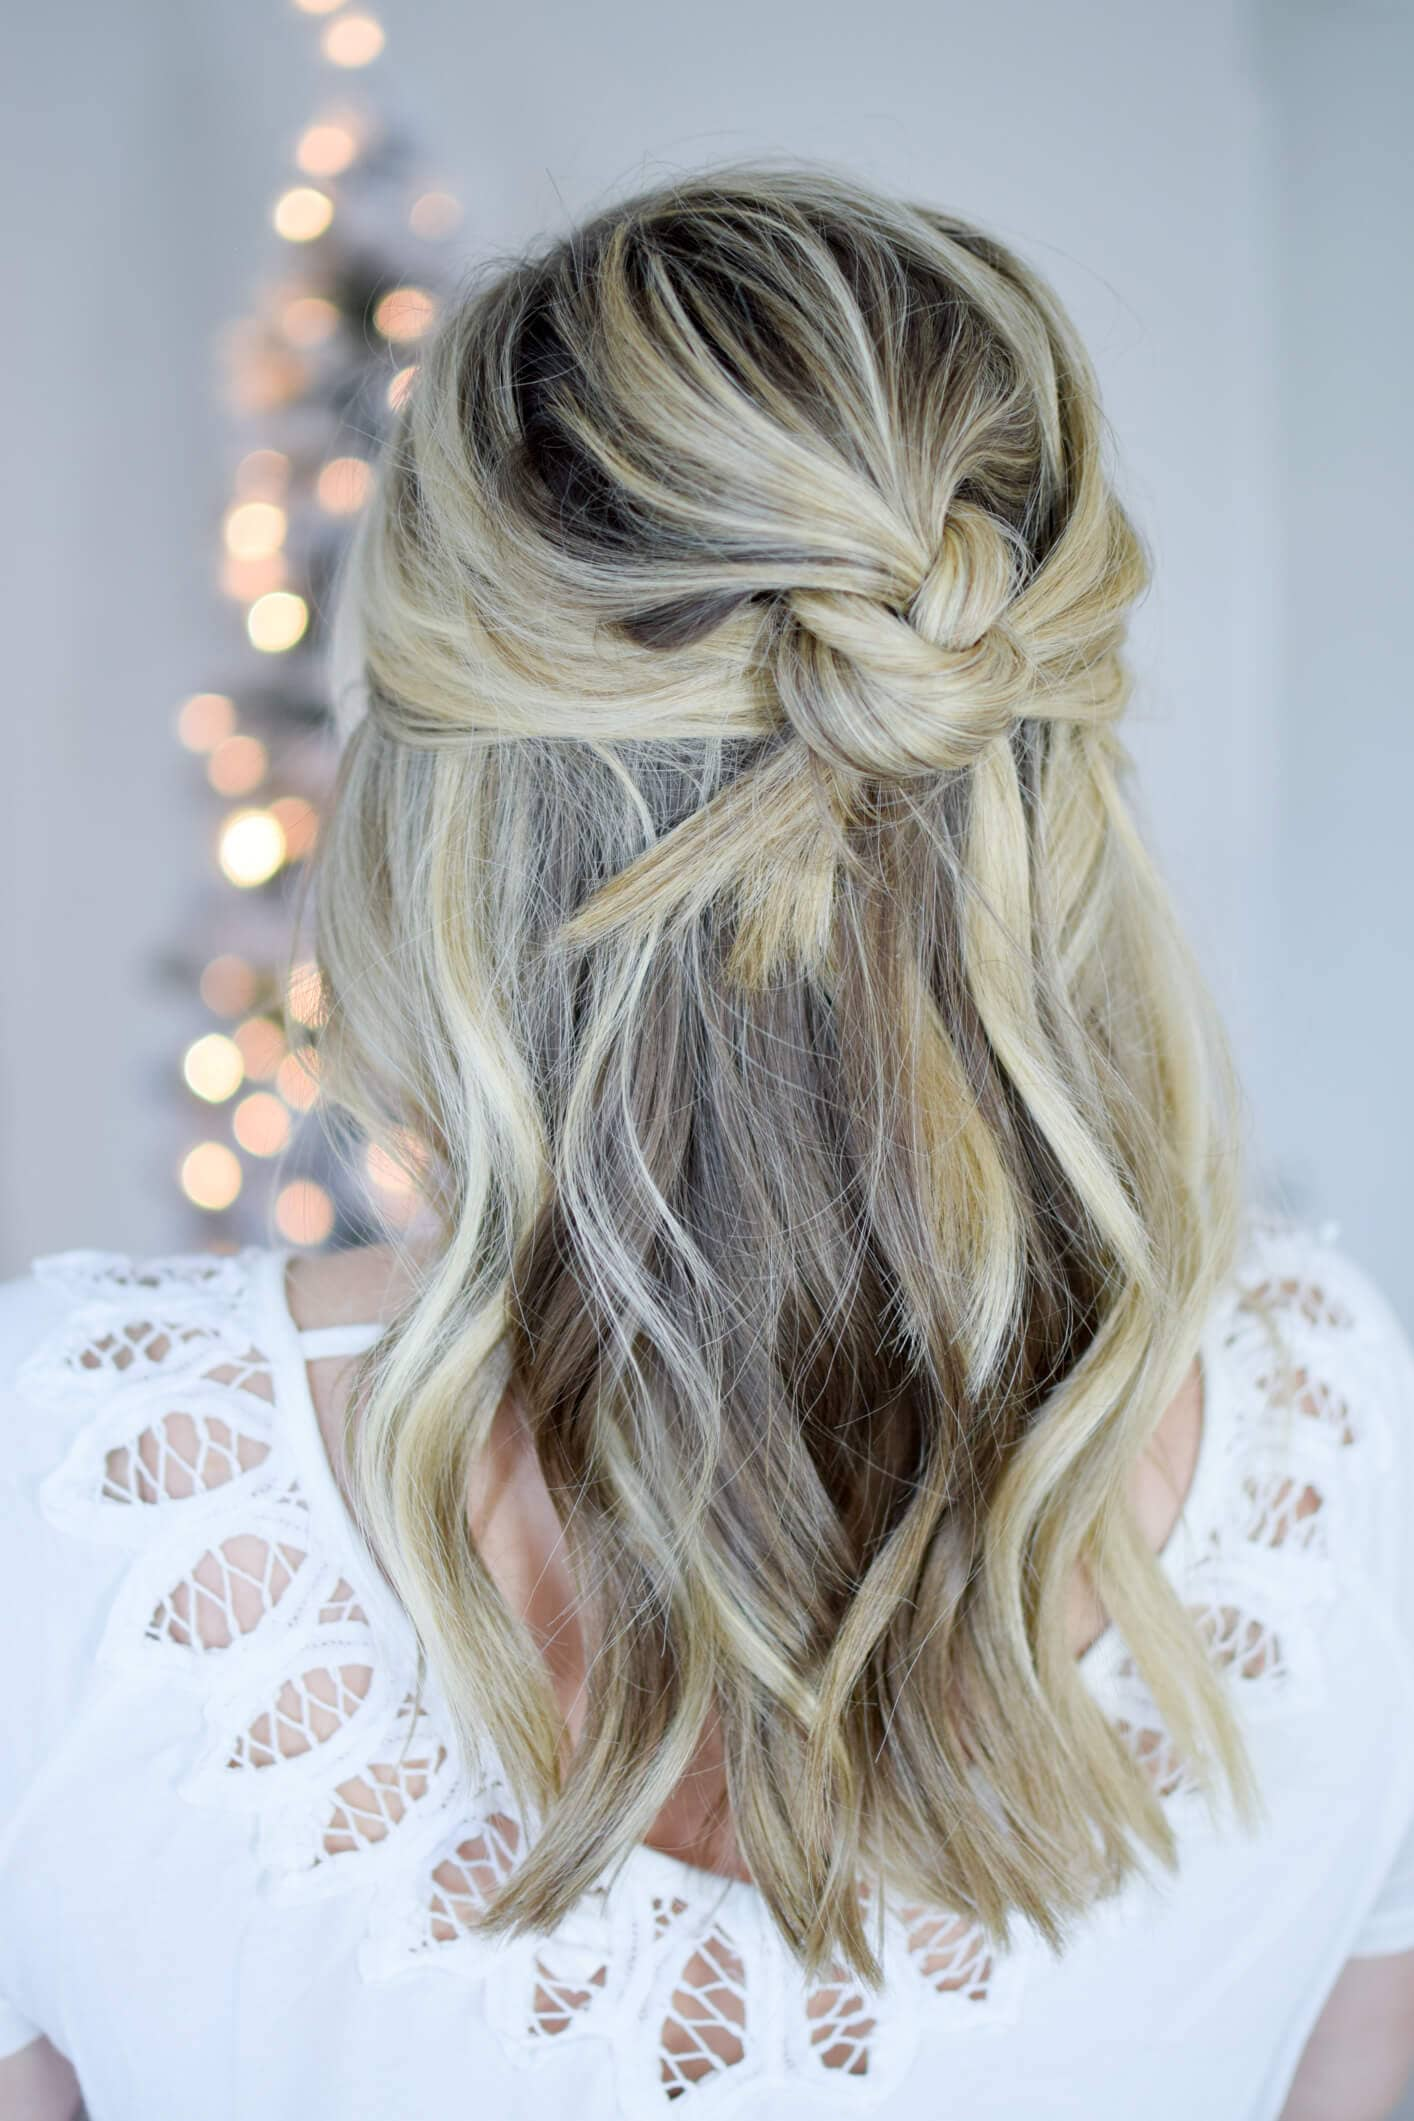 Knotty but Nice Look